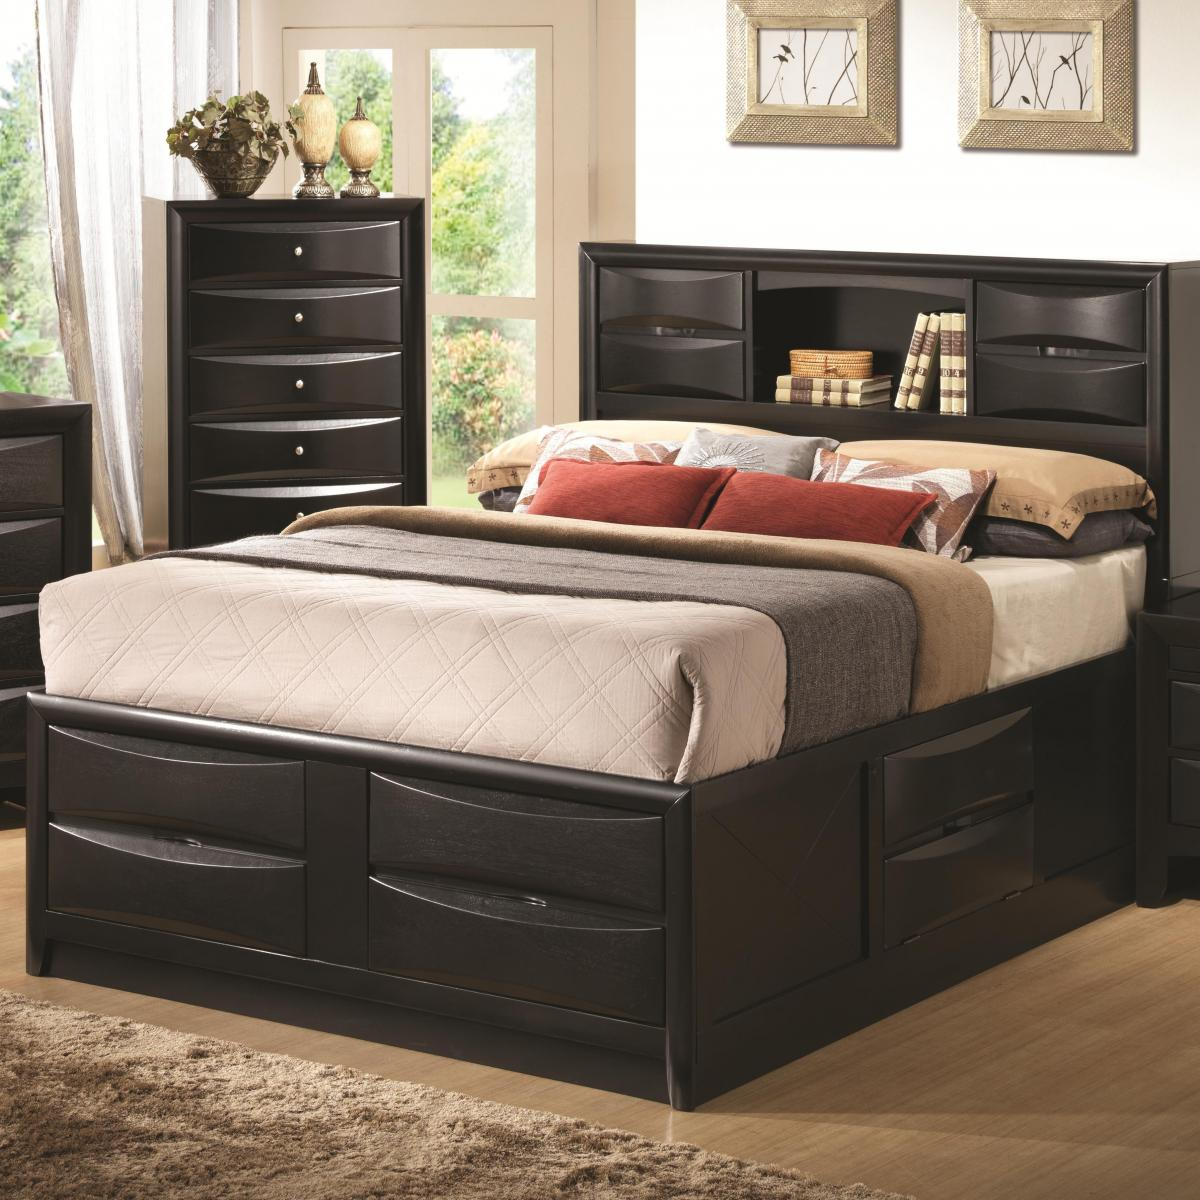 4-drawers-on-black-wooden-bed-frames-furnishing